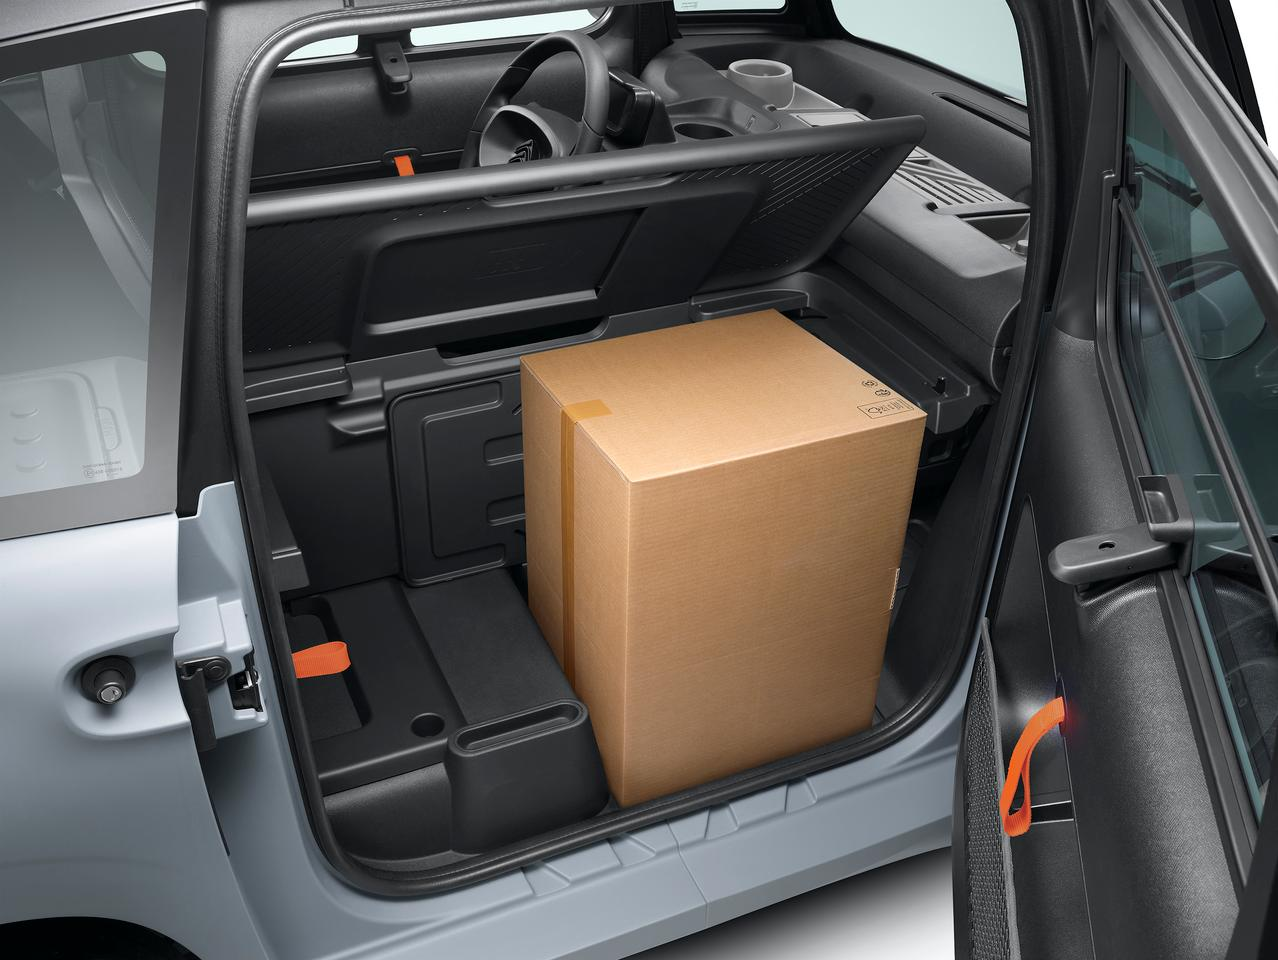 The passenger space has been replaced by a modular storage compartment